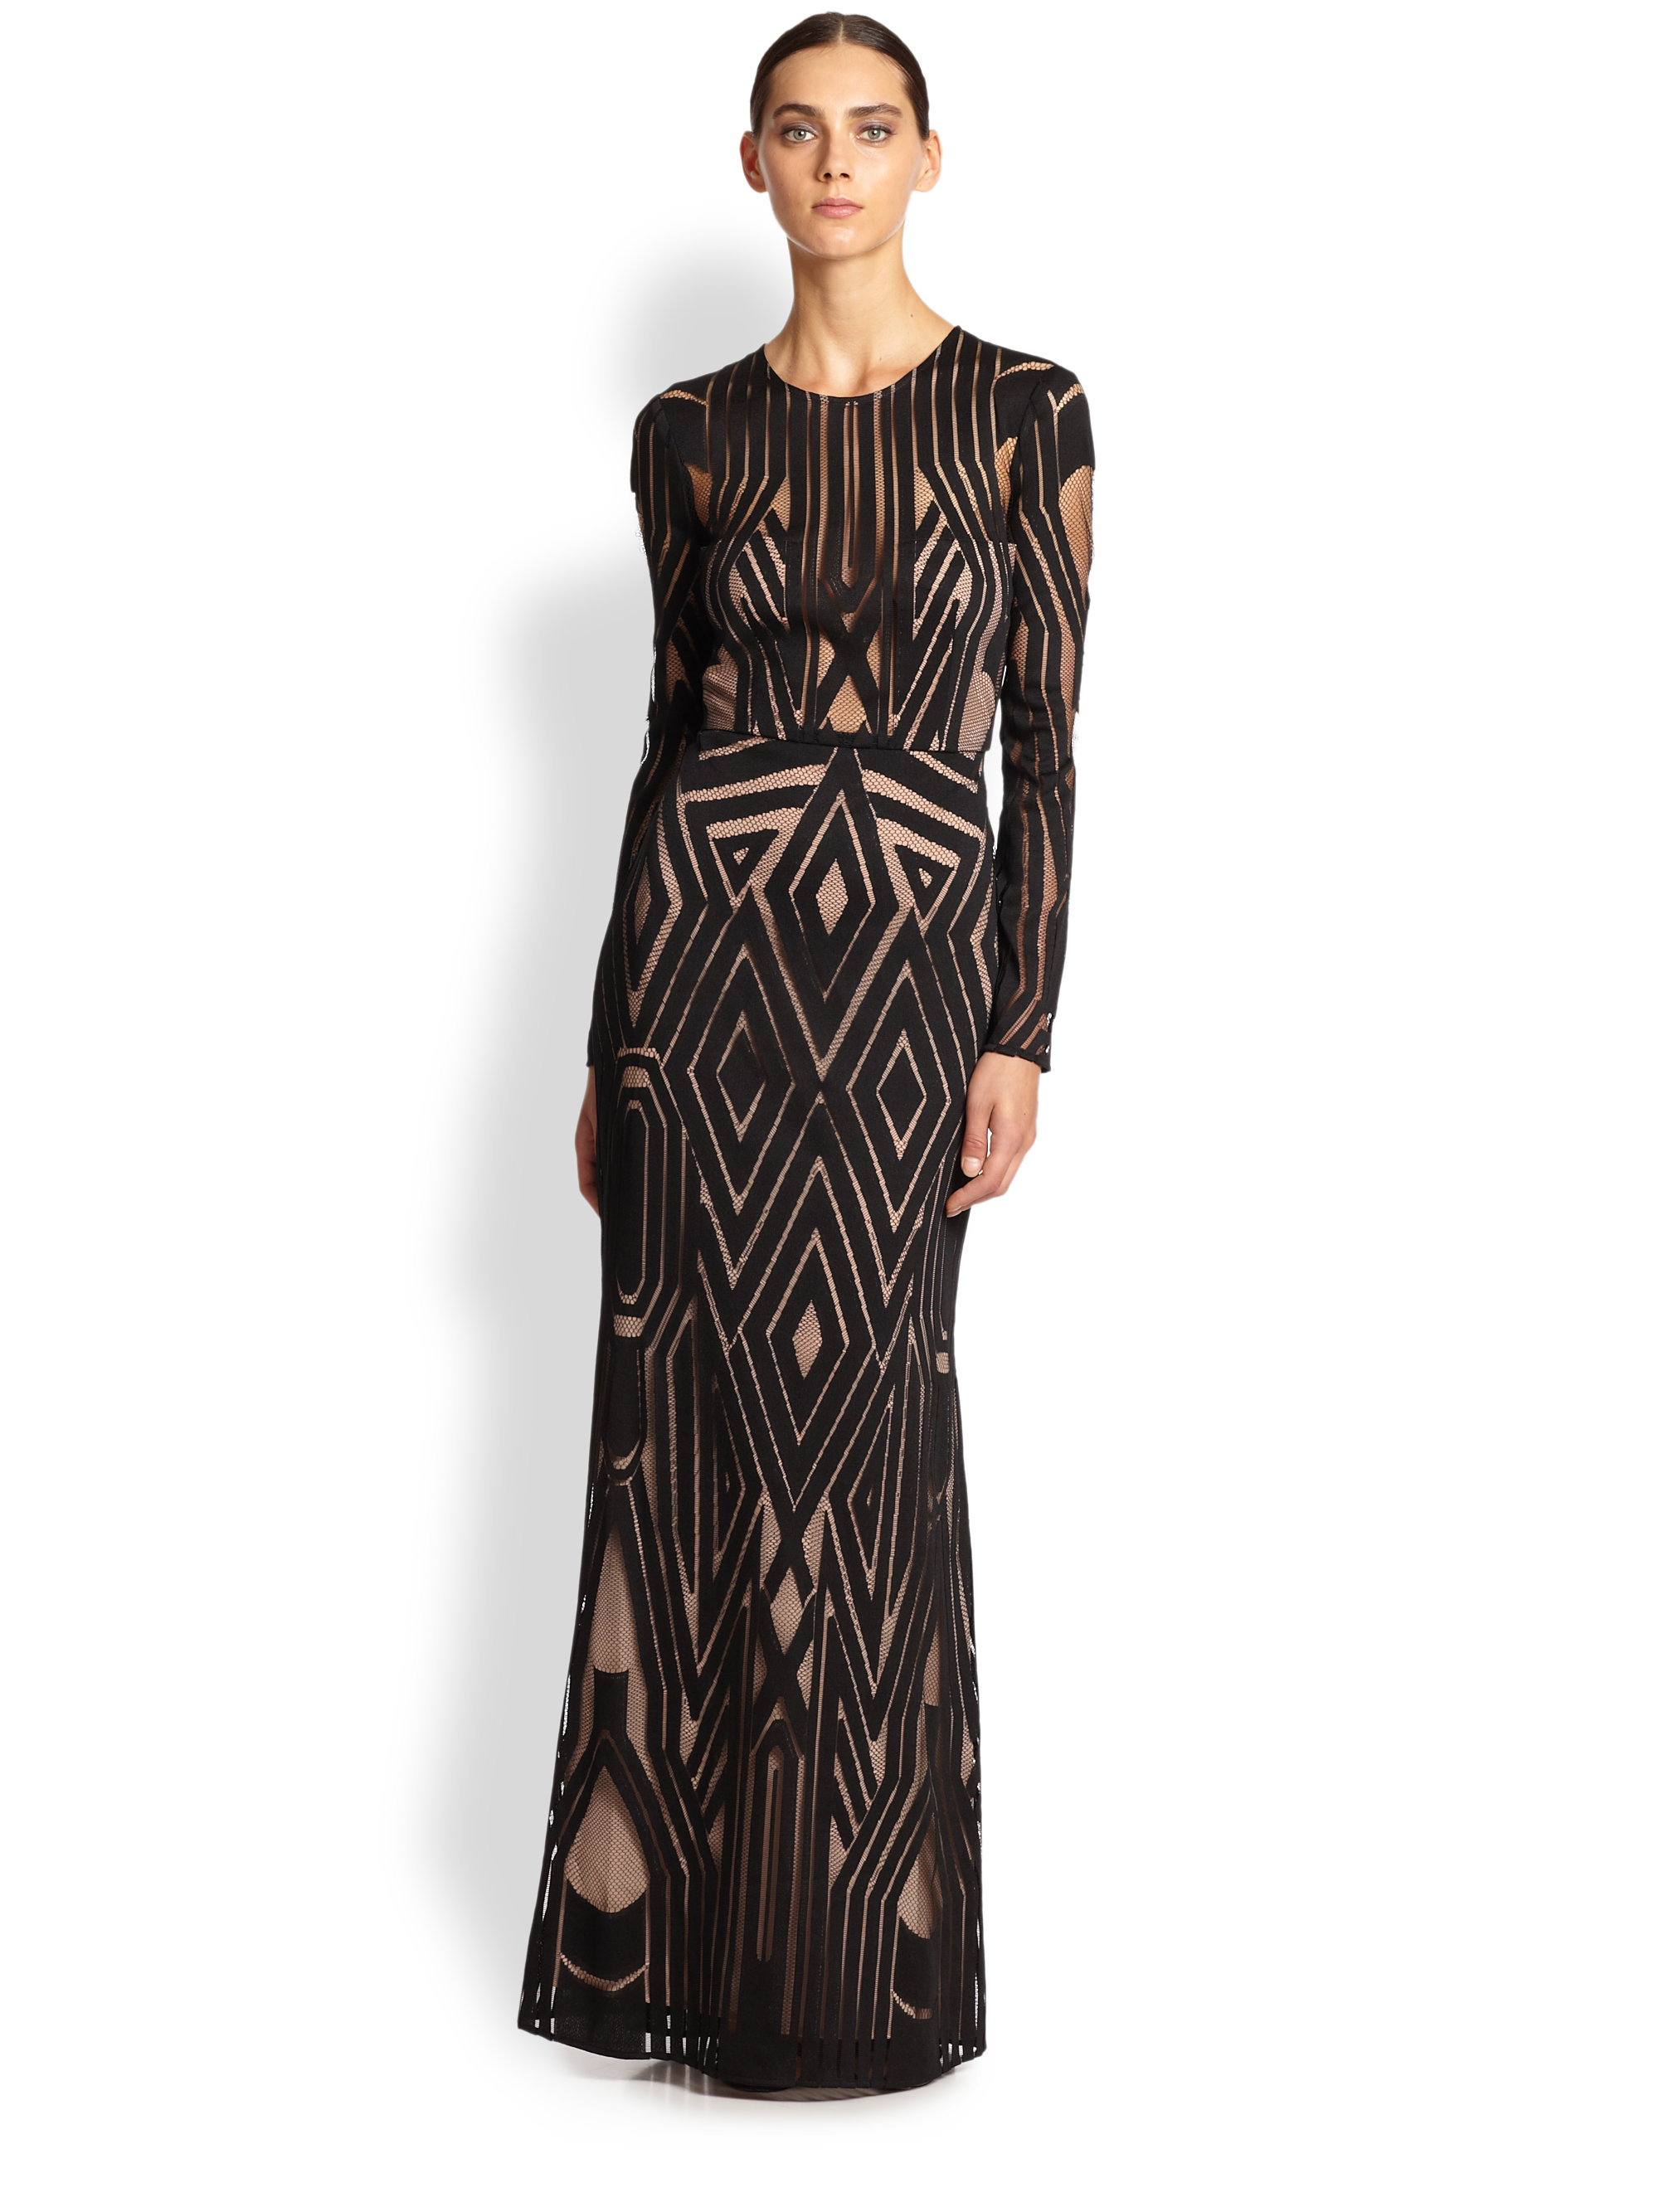 Lyst - Bcbgmaxazria Viera Engineered Lace Gown in Black